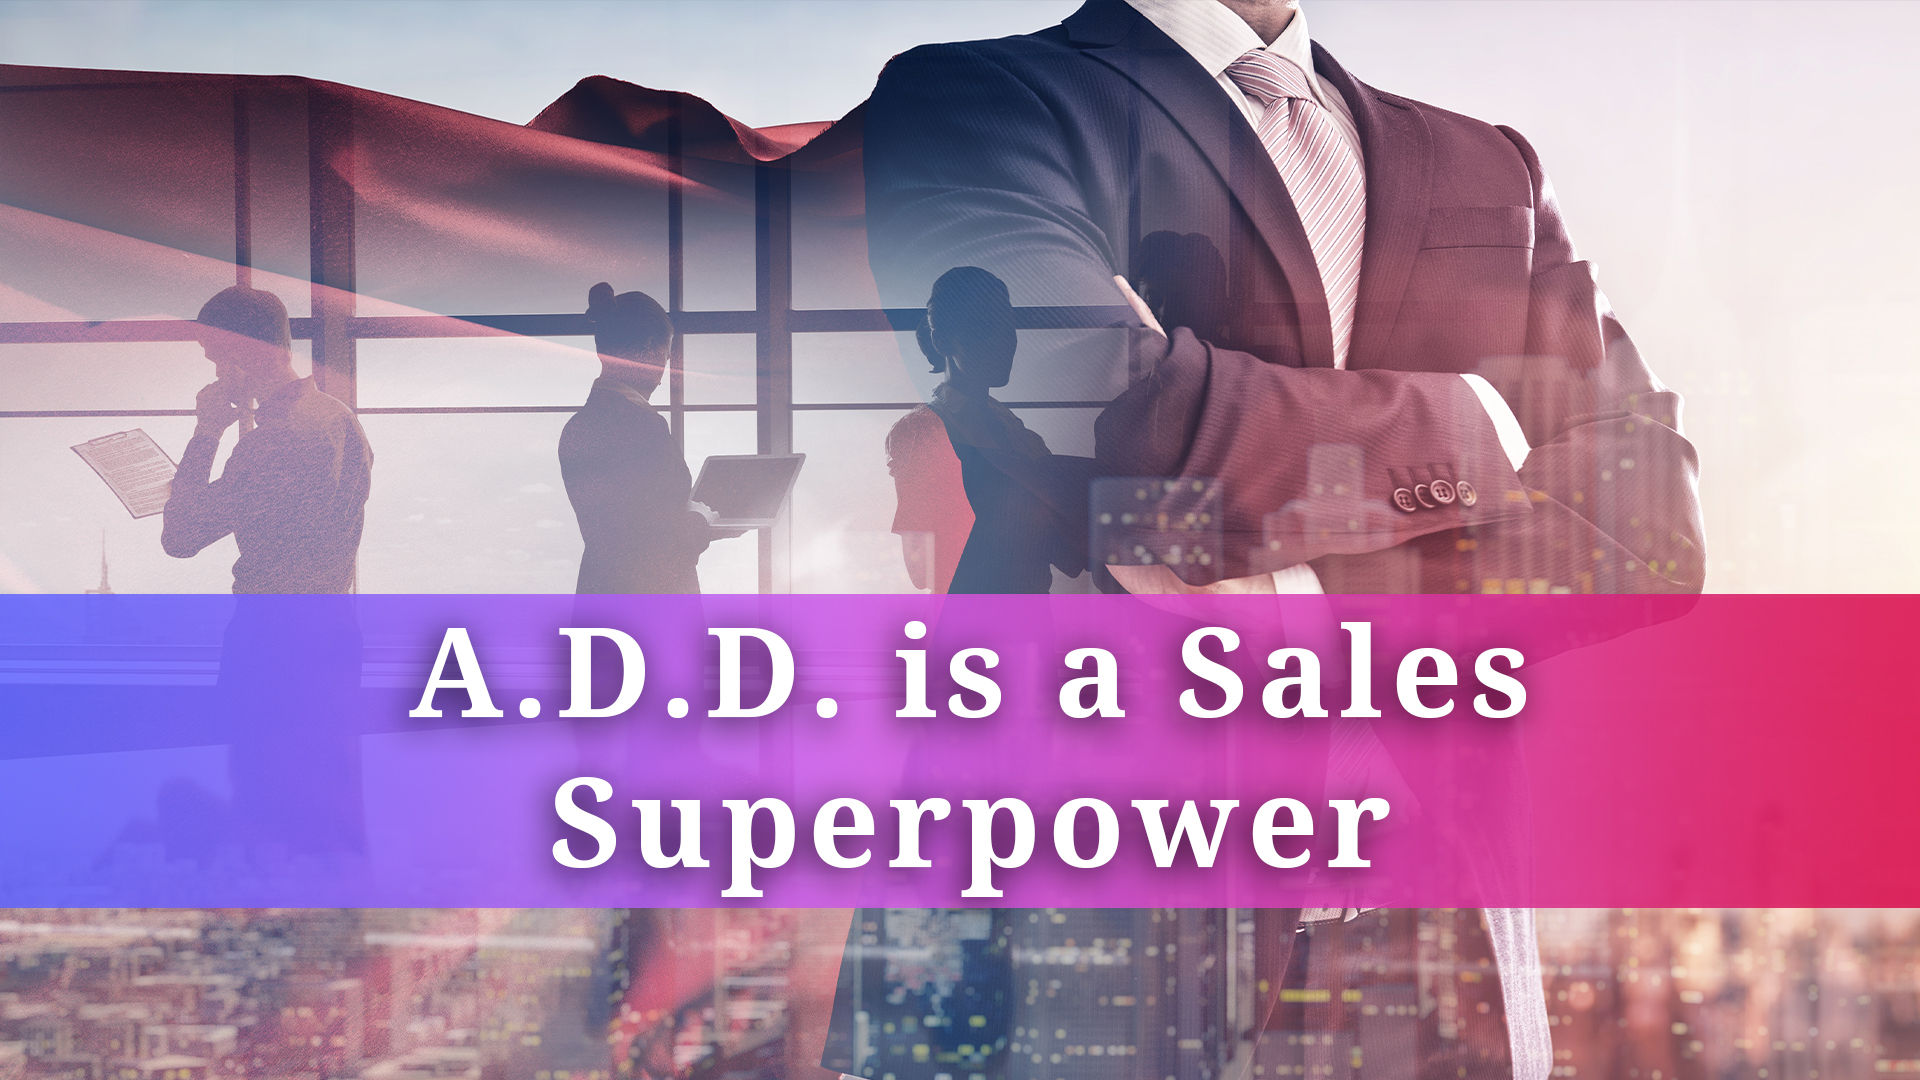 Why A.D.D is a Superpower in Sales